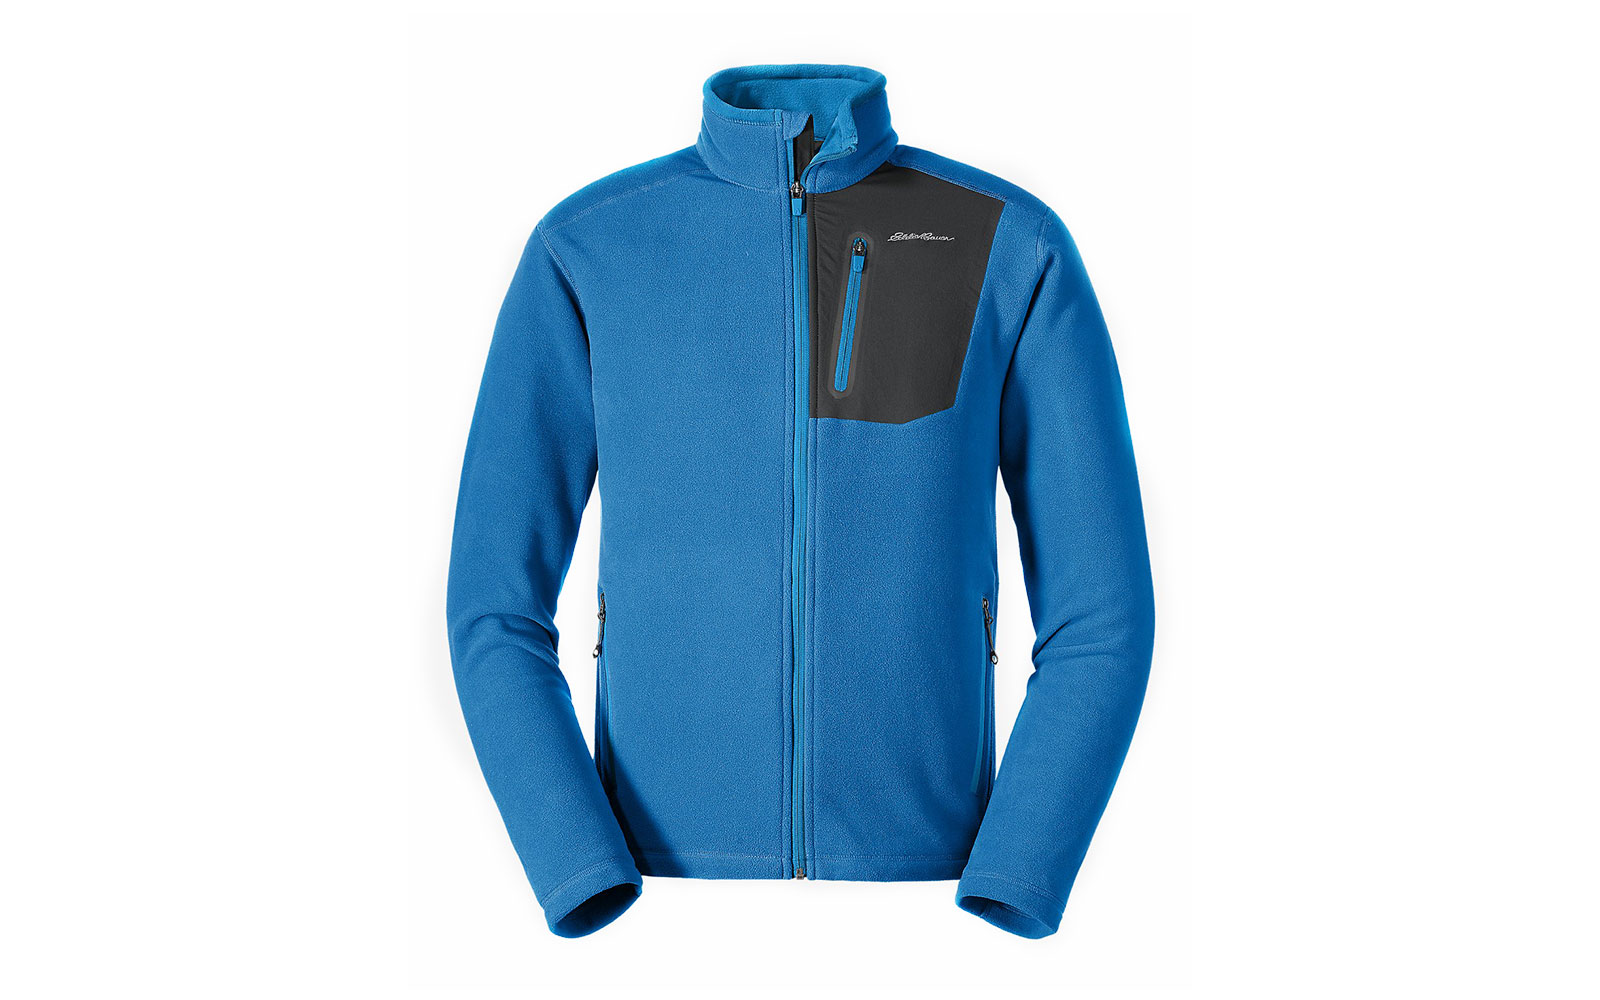 Eddie Bauer Cloud Layer Pro Full-Zip Jacket